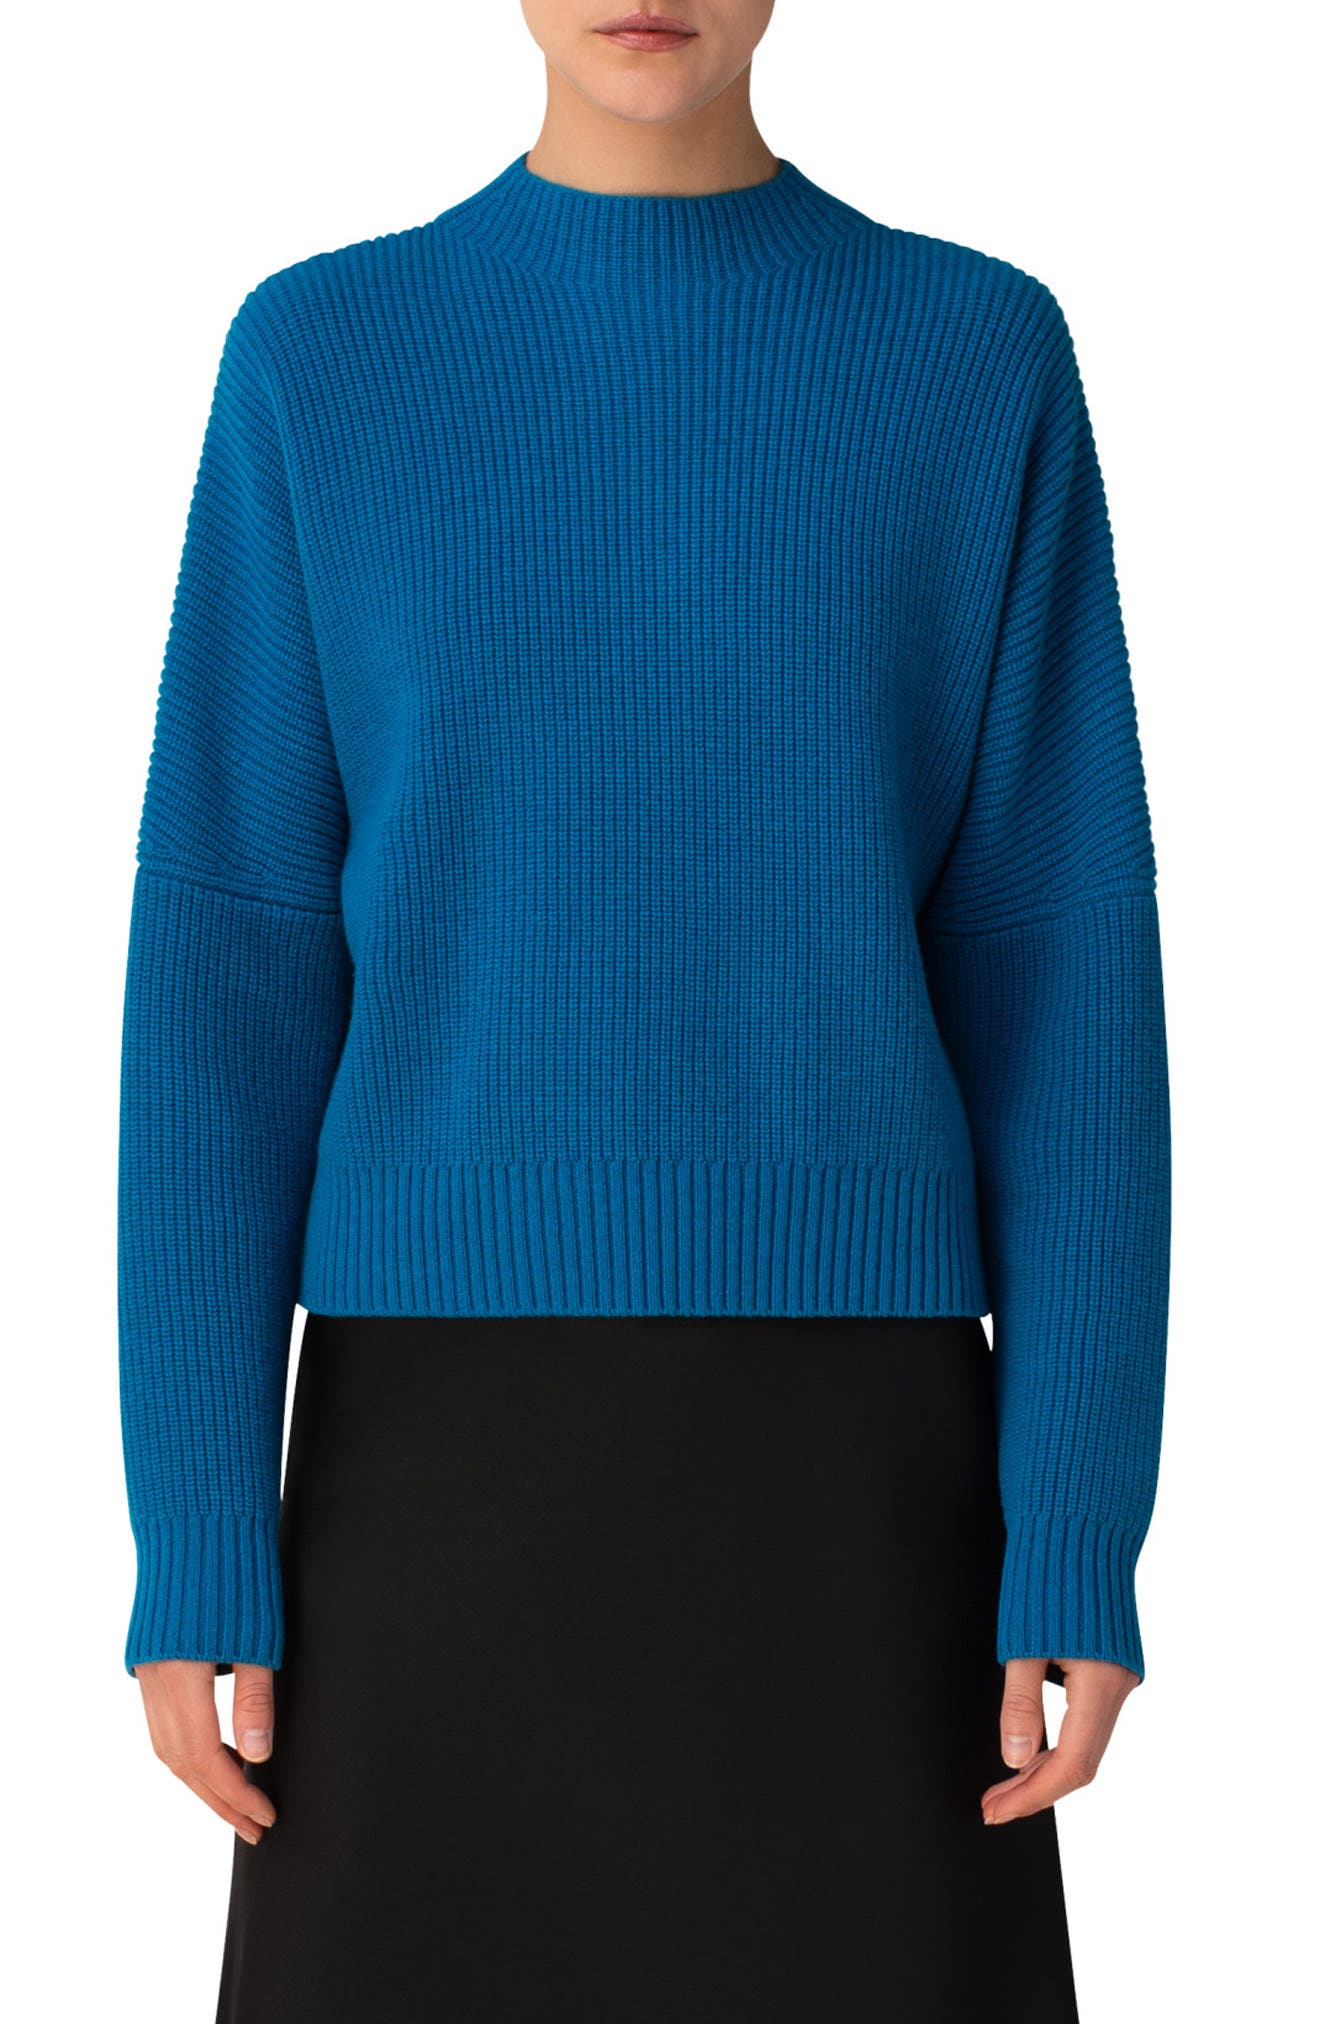 Dropped shoulders and a slightly boxy fit relax this shaker-rib sweater knit from a soft blend of wool and cashmere yarn. Style Name: Akris Punto Rib Wool & Cashmere Sweater. Style Number: 6046391. Available in stores.